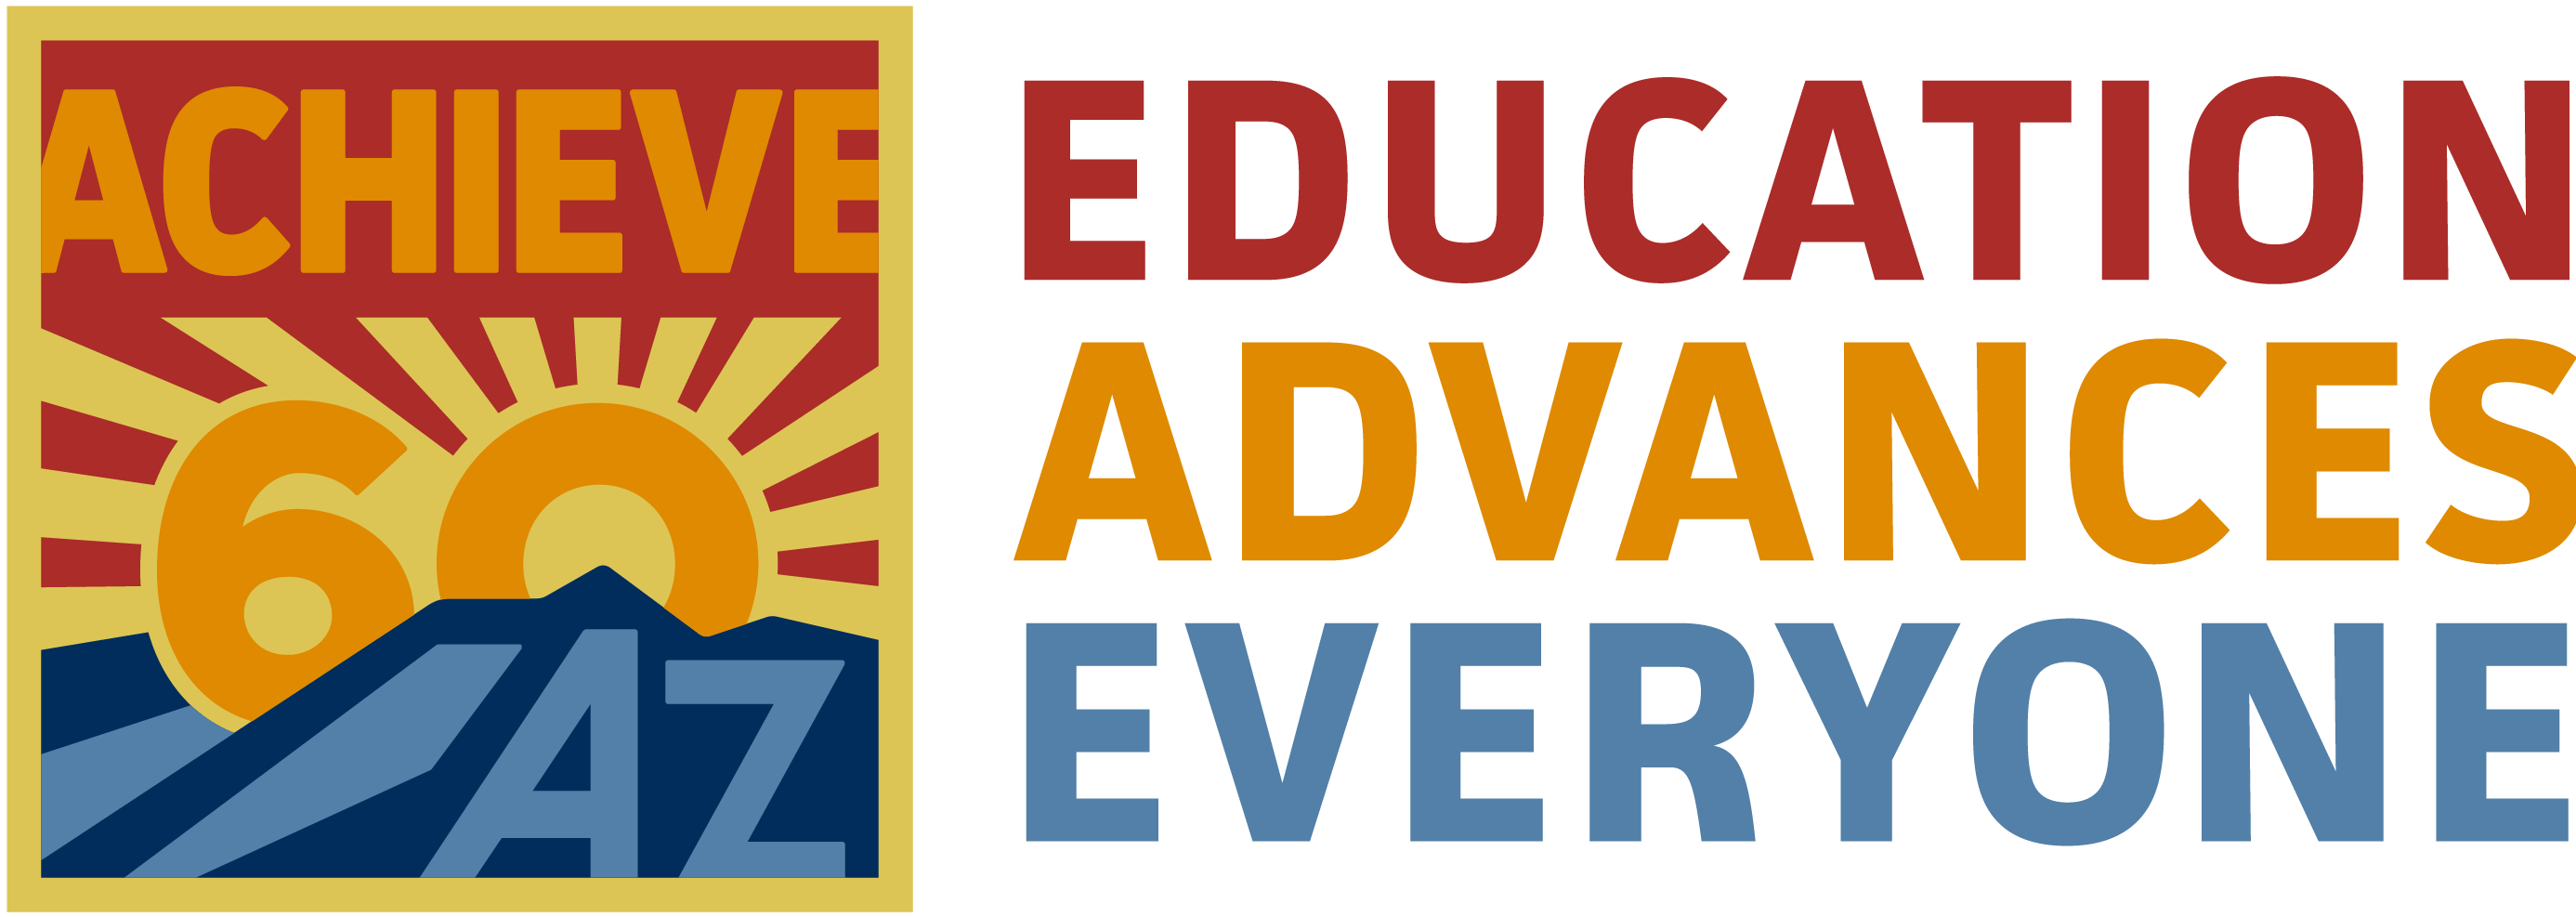 Achieve 60 Arizona logo